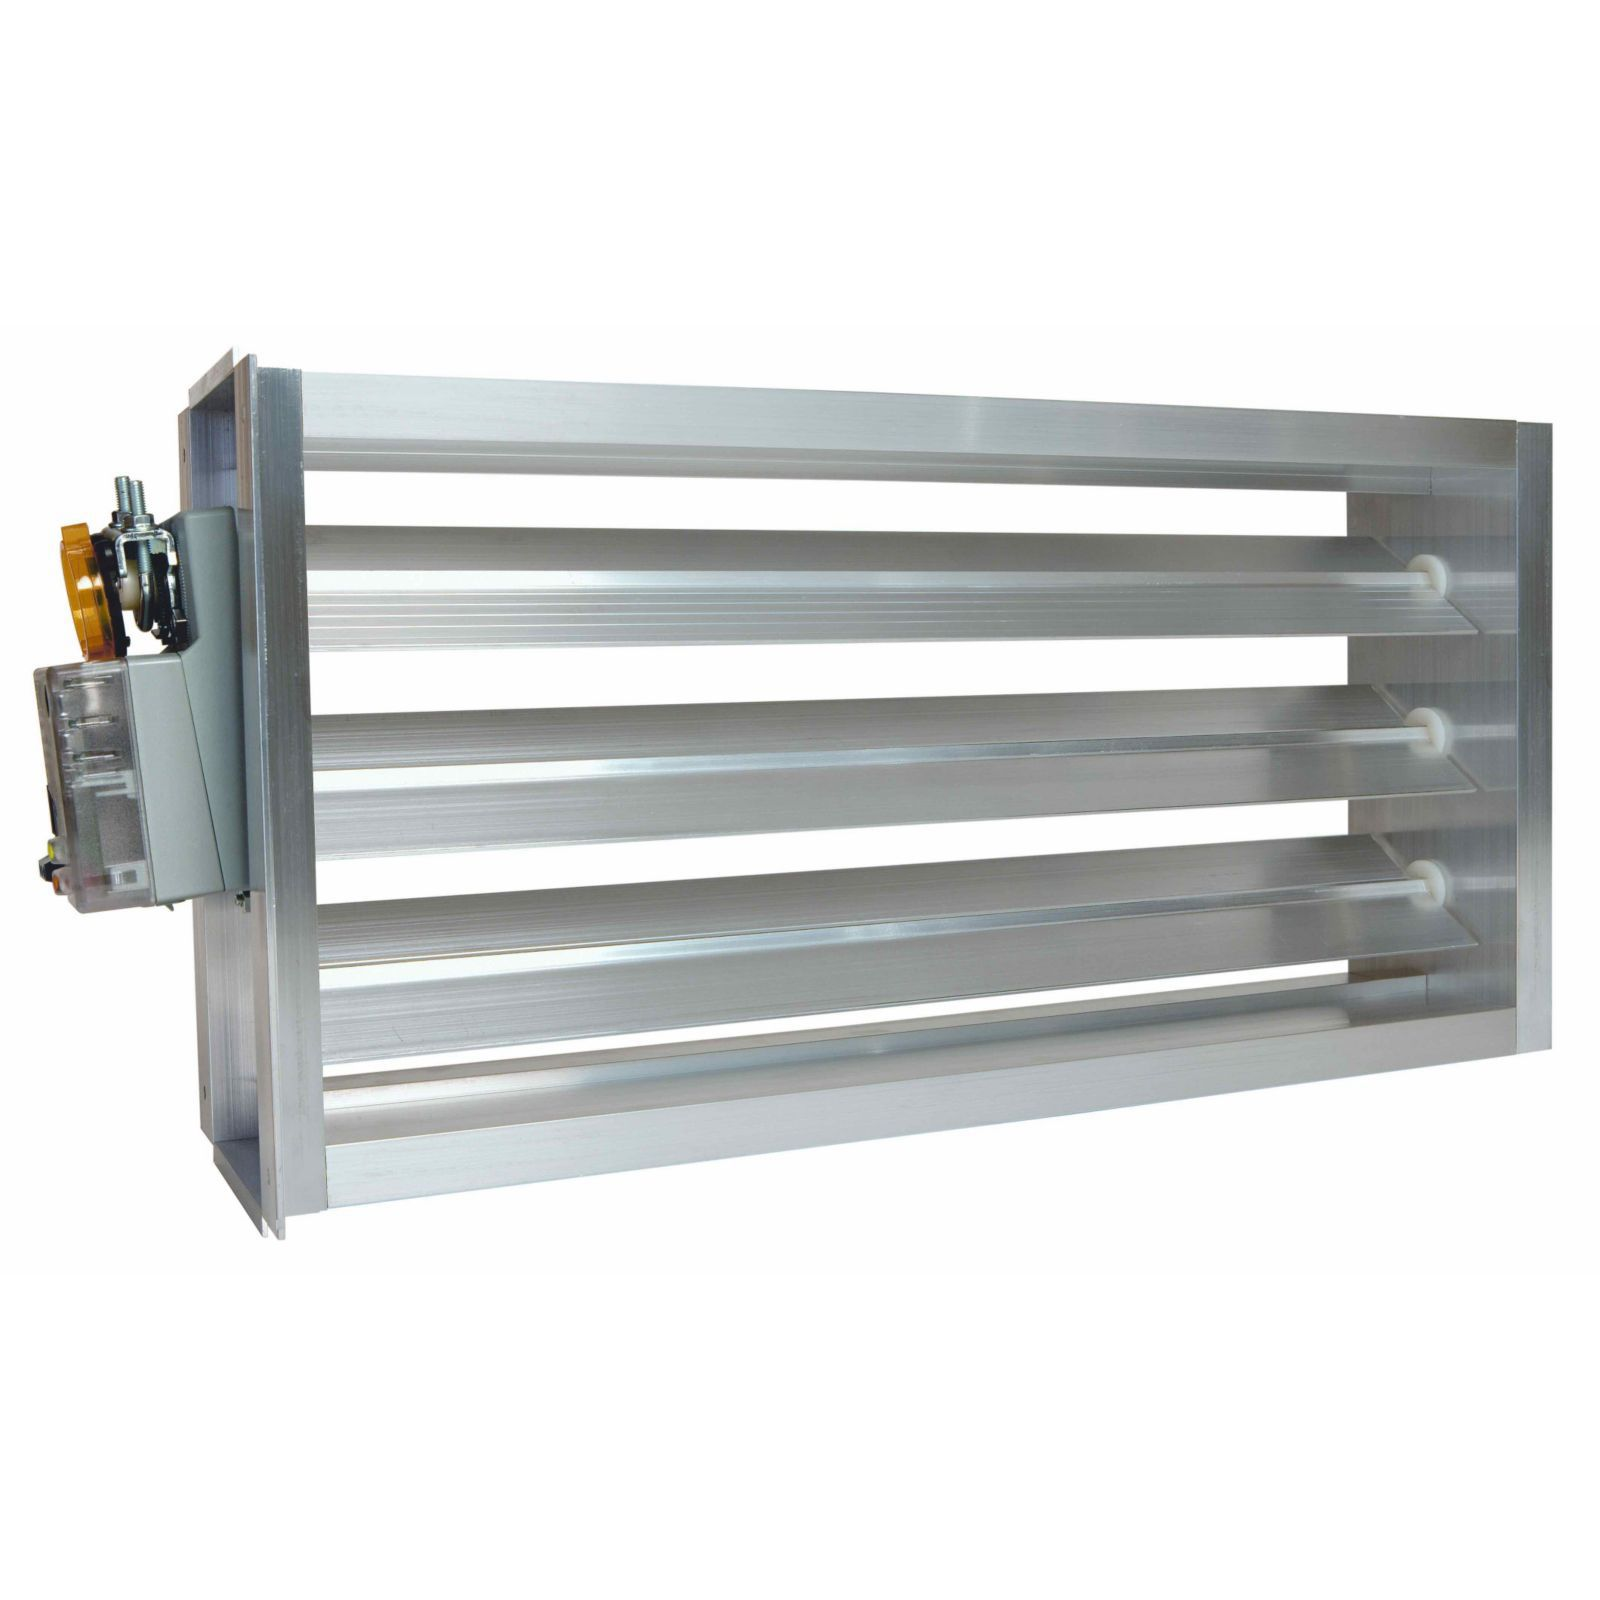 "EWC 24X8 ND - Motorized Ultra-Zone Damper, 24"" X 8"""